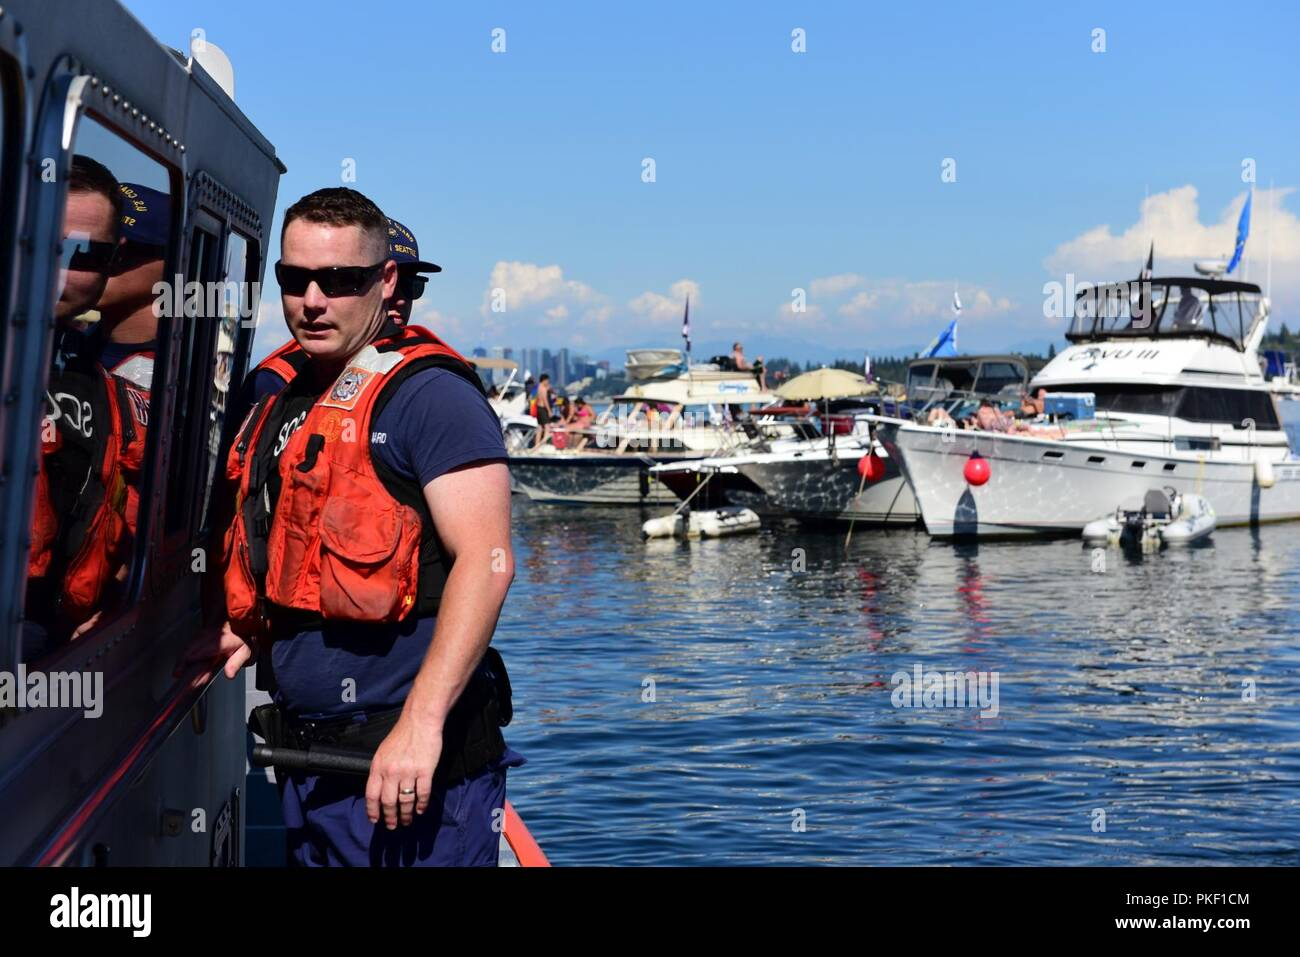 Coast Guard Petty Officer 2nd Class Preston McKernan, a boatswain's mate from Station Seattle, patrols Lake Washington aboard a 45-foot Response Boat-Medium on Aug. 4, 2018. The Coast Guard worked to ensure the safety of all Seafair participants, including boaters, paddle craft operators and swimmers. U.S. Coast Guard - Stock Image